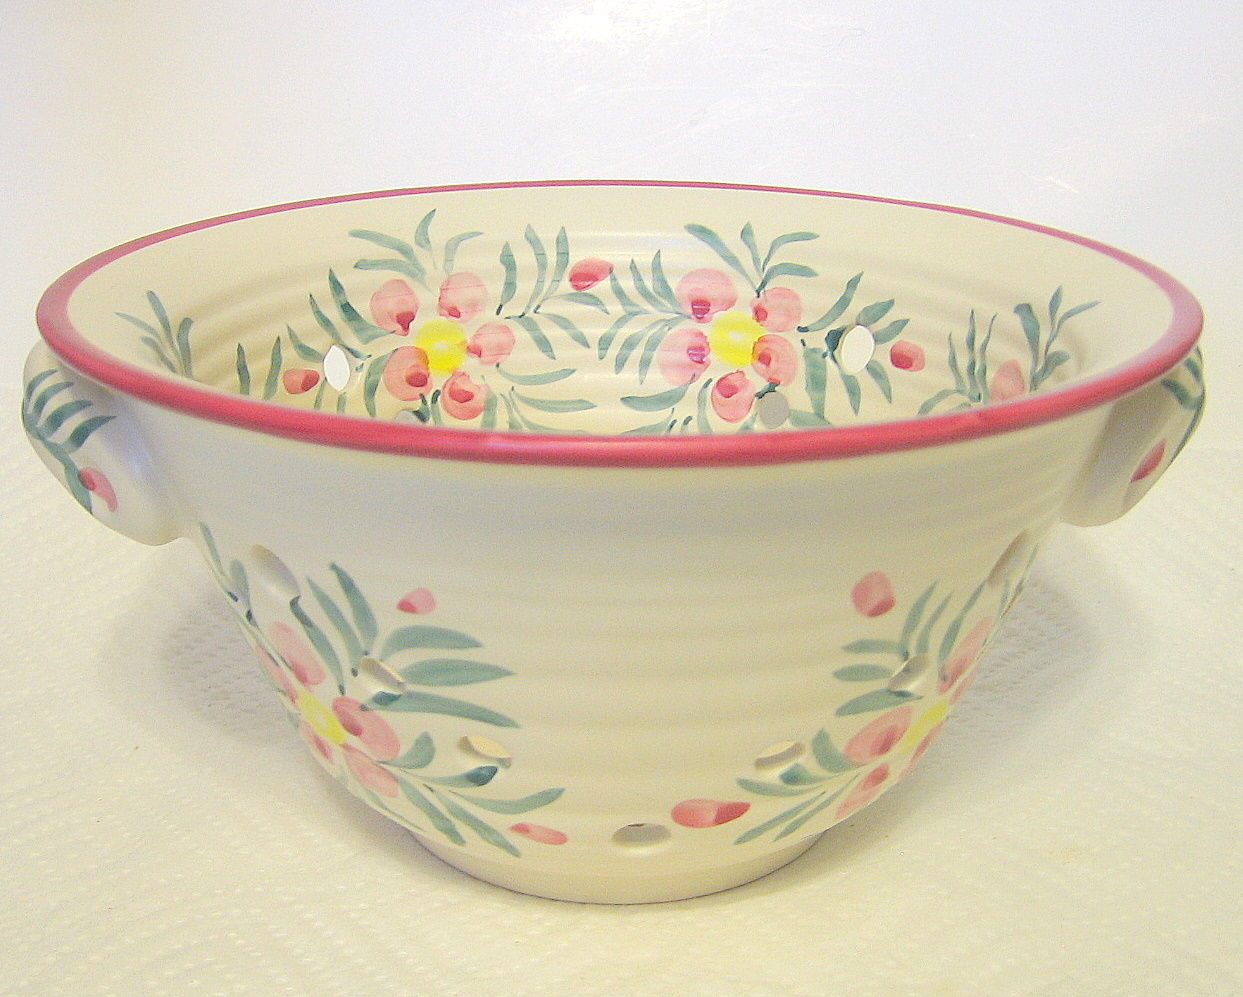 Ceramic Strainer Floral Motif New Debco Made in China